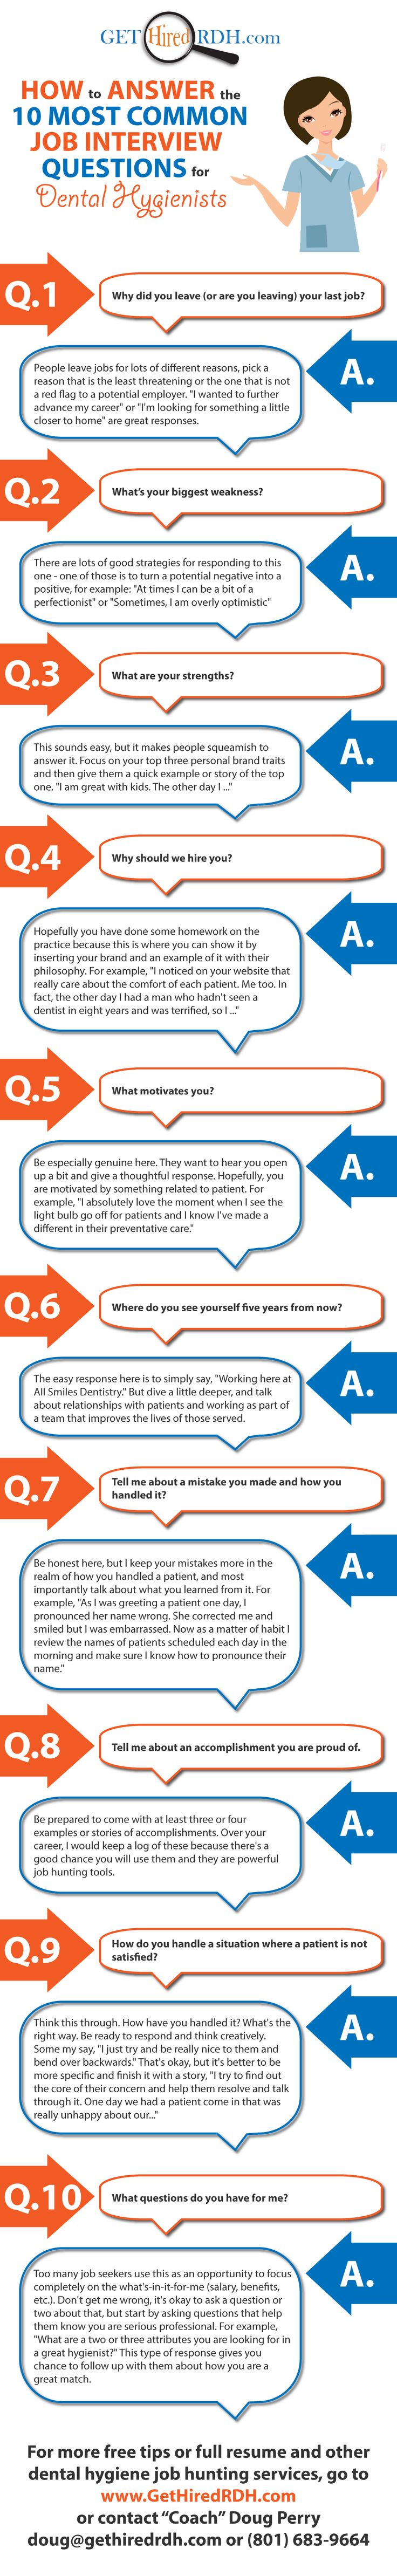 best ideas about most common interview questions how to answer the 10 most common interview questions for dental hygienists get more at gethiredrdh